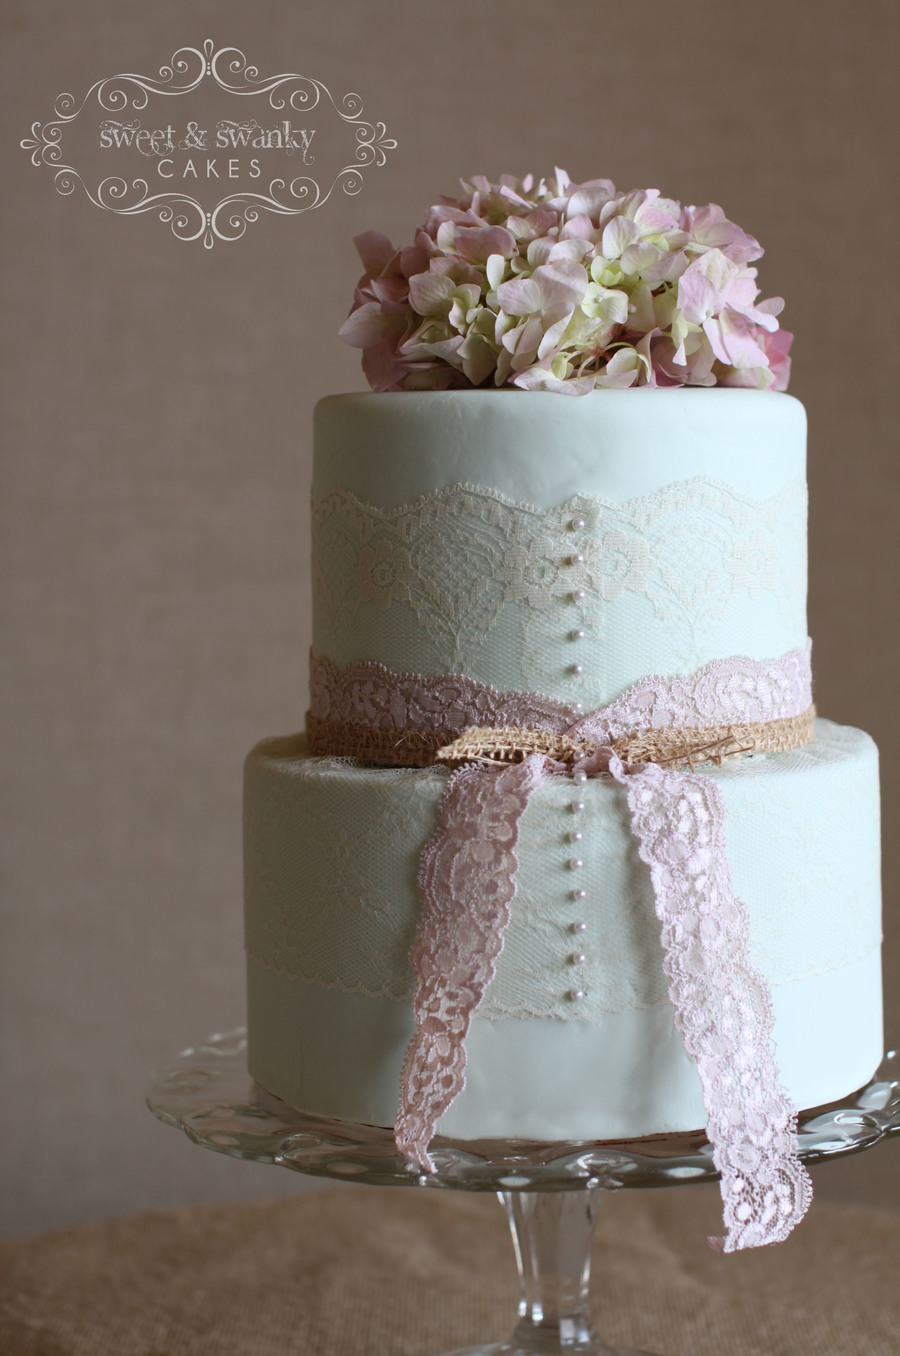 Vintage Mint Green Wedding Cake With Real Lace And Hydrangas By Sweet And Swanky Cakes on Cake Central